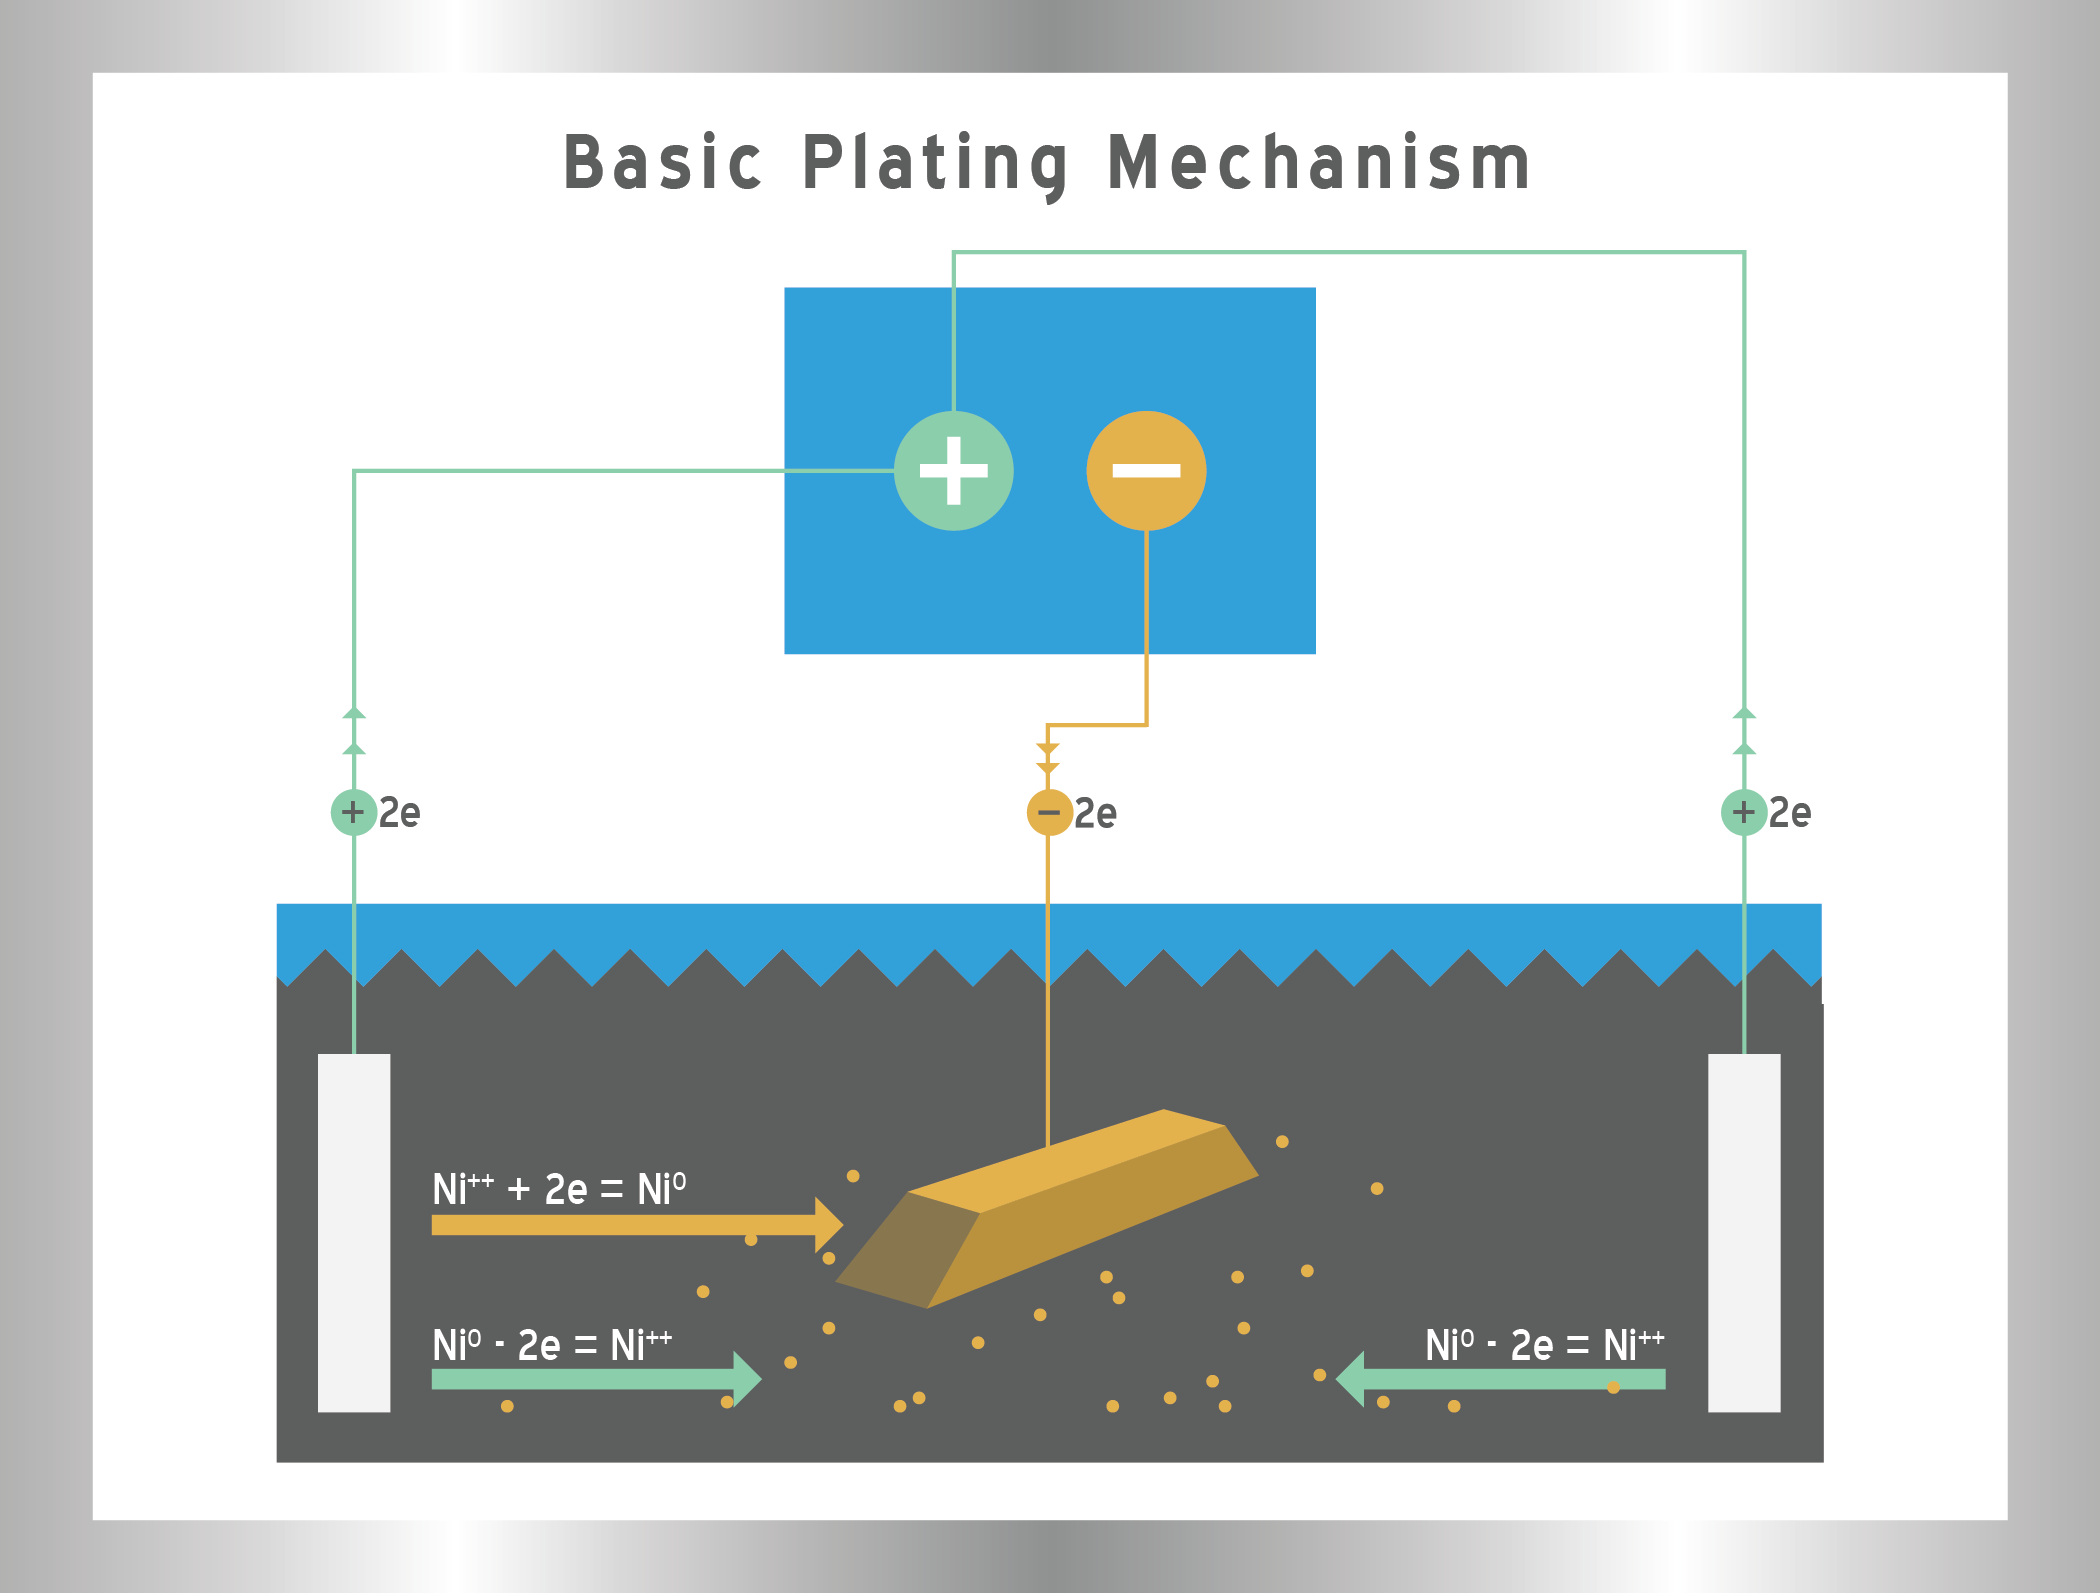 Basic Plating Mechanism Graphic - Klein Plating Works